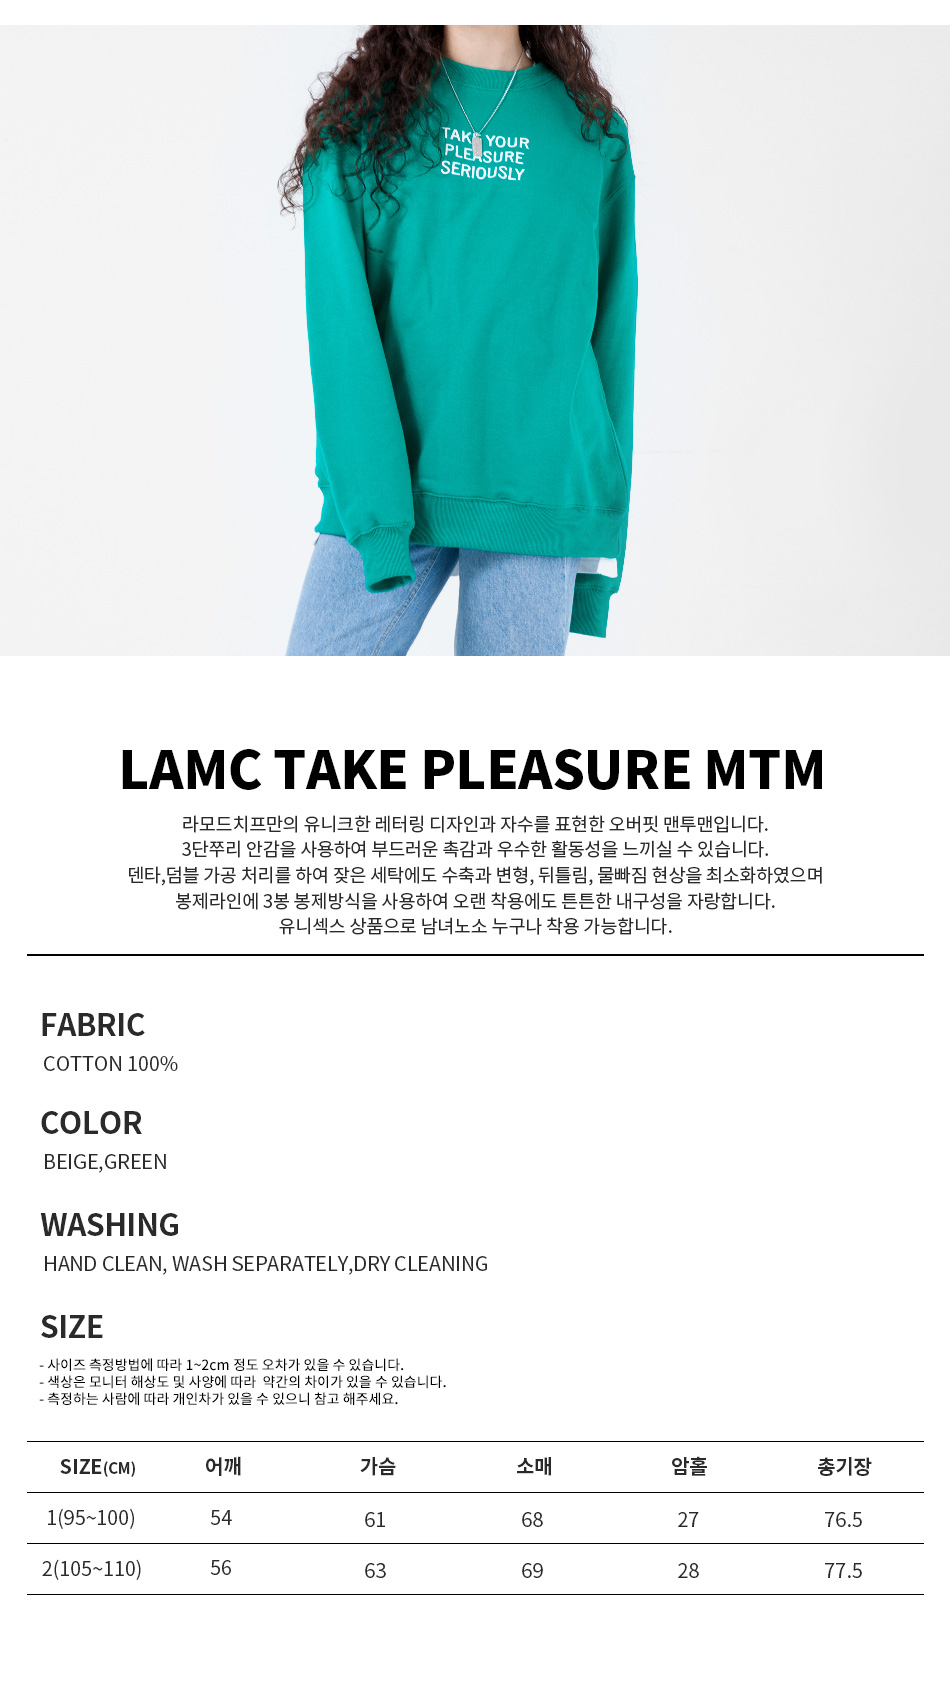 라모드치프 LAMC TAKE PLEASURE MTM (GREEN)